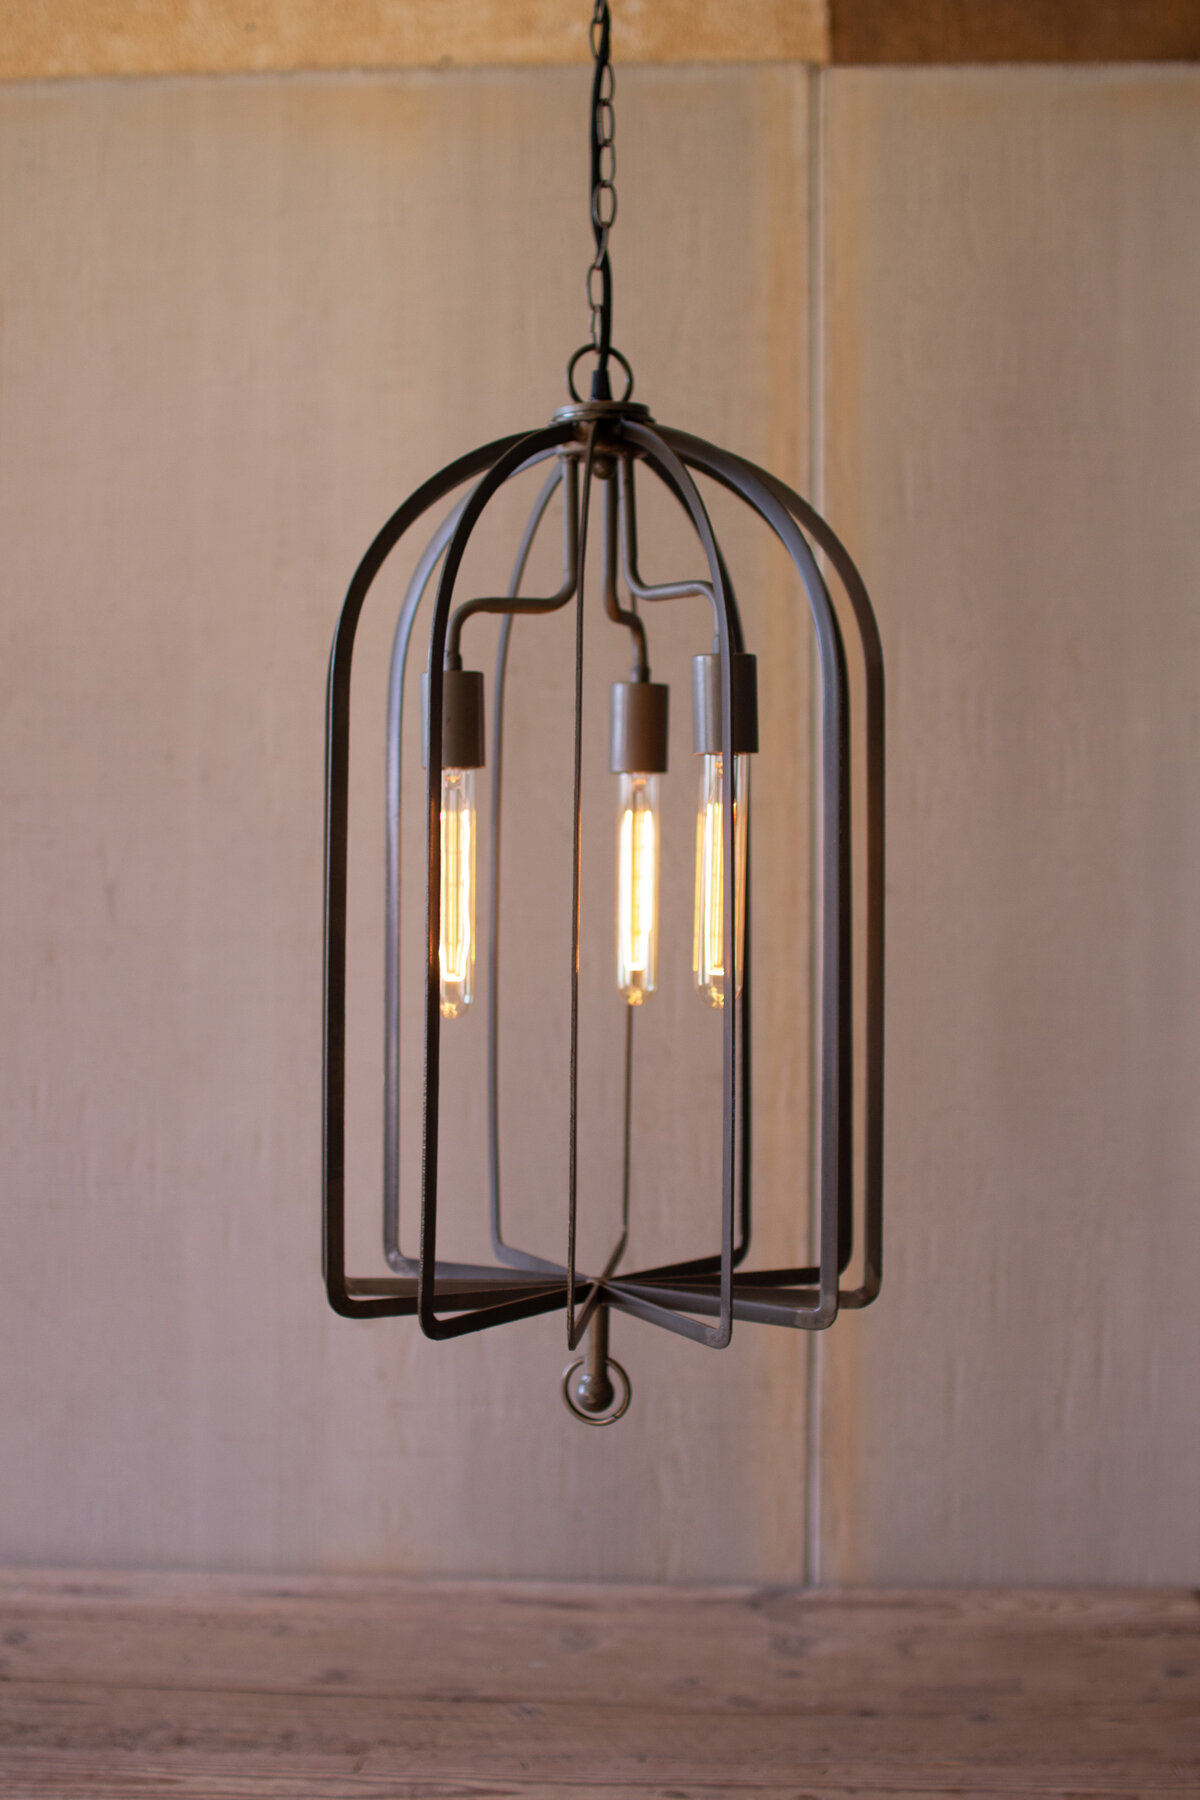 Streit 3-Light Lantern Cylinder Pendant intended for Chauvin 3-Light Lantern Geometric Pendants (Image 27 of 30)